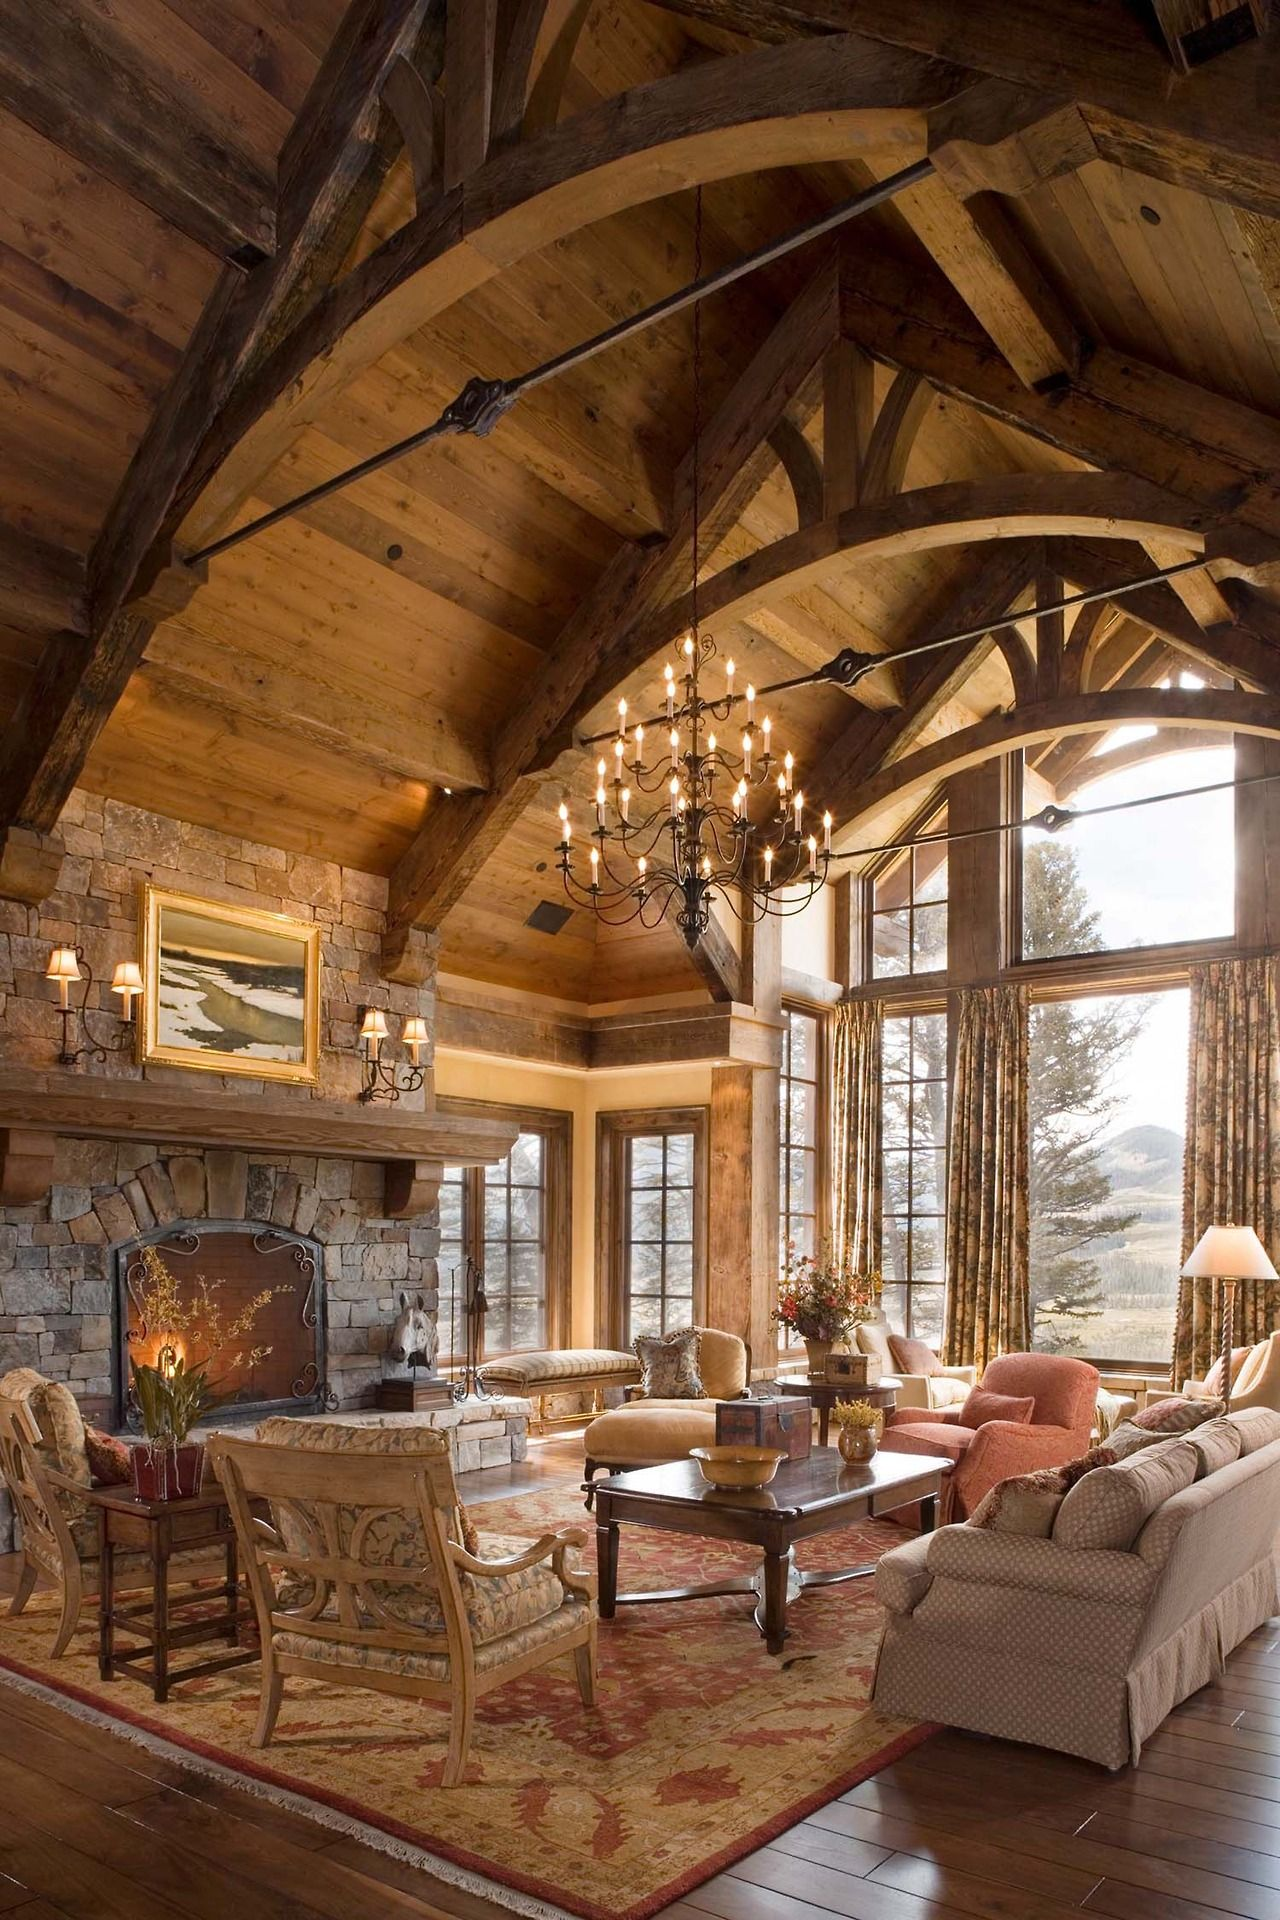 locati architects. Designed By Locati Architects And Built Schlauch Bottcher Construction, Located In Big Sky, R